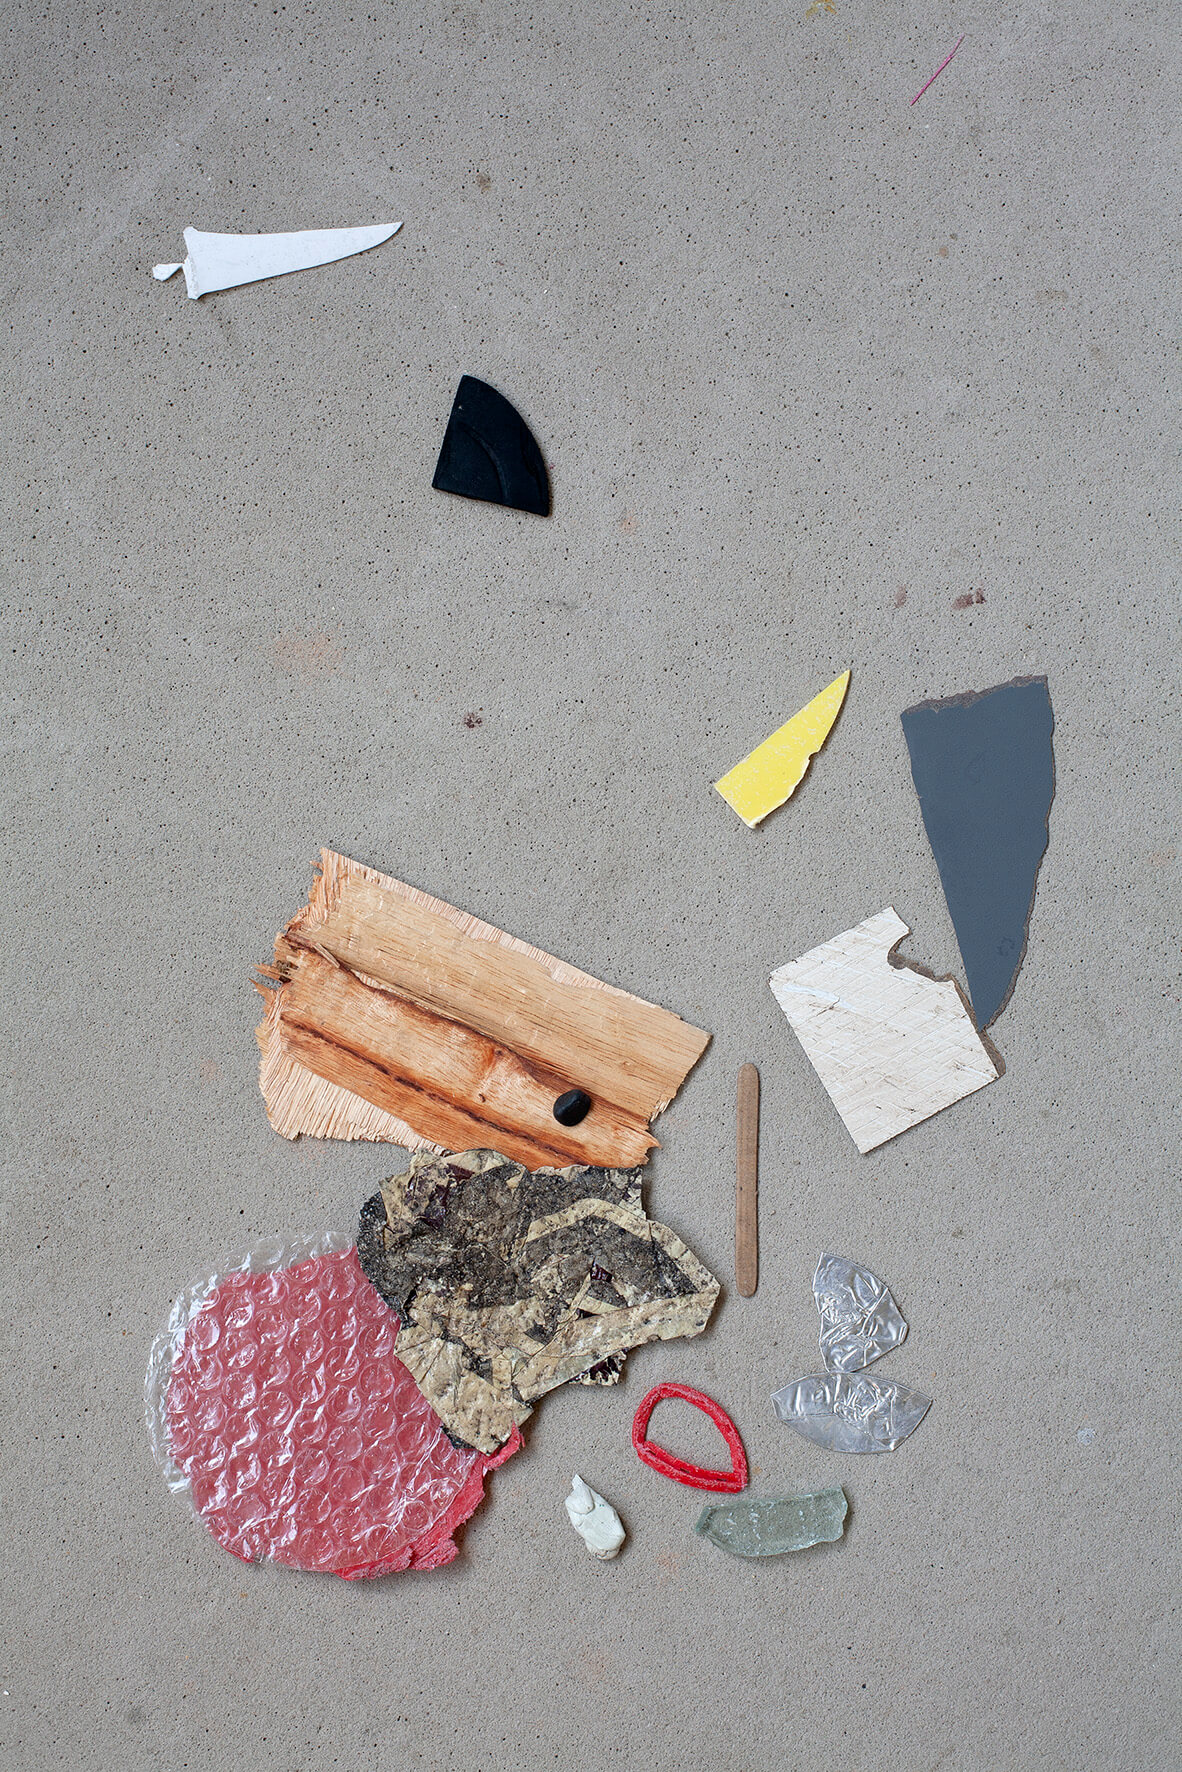 Chua Chye Teck, 'Under The Bodhi Tree' (detail), 2019, found objects and images printed on recypal paper, dimensions variable. Image courtesy of Ota Fine Arts.